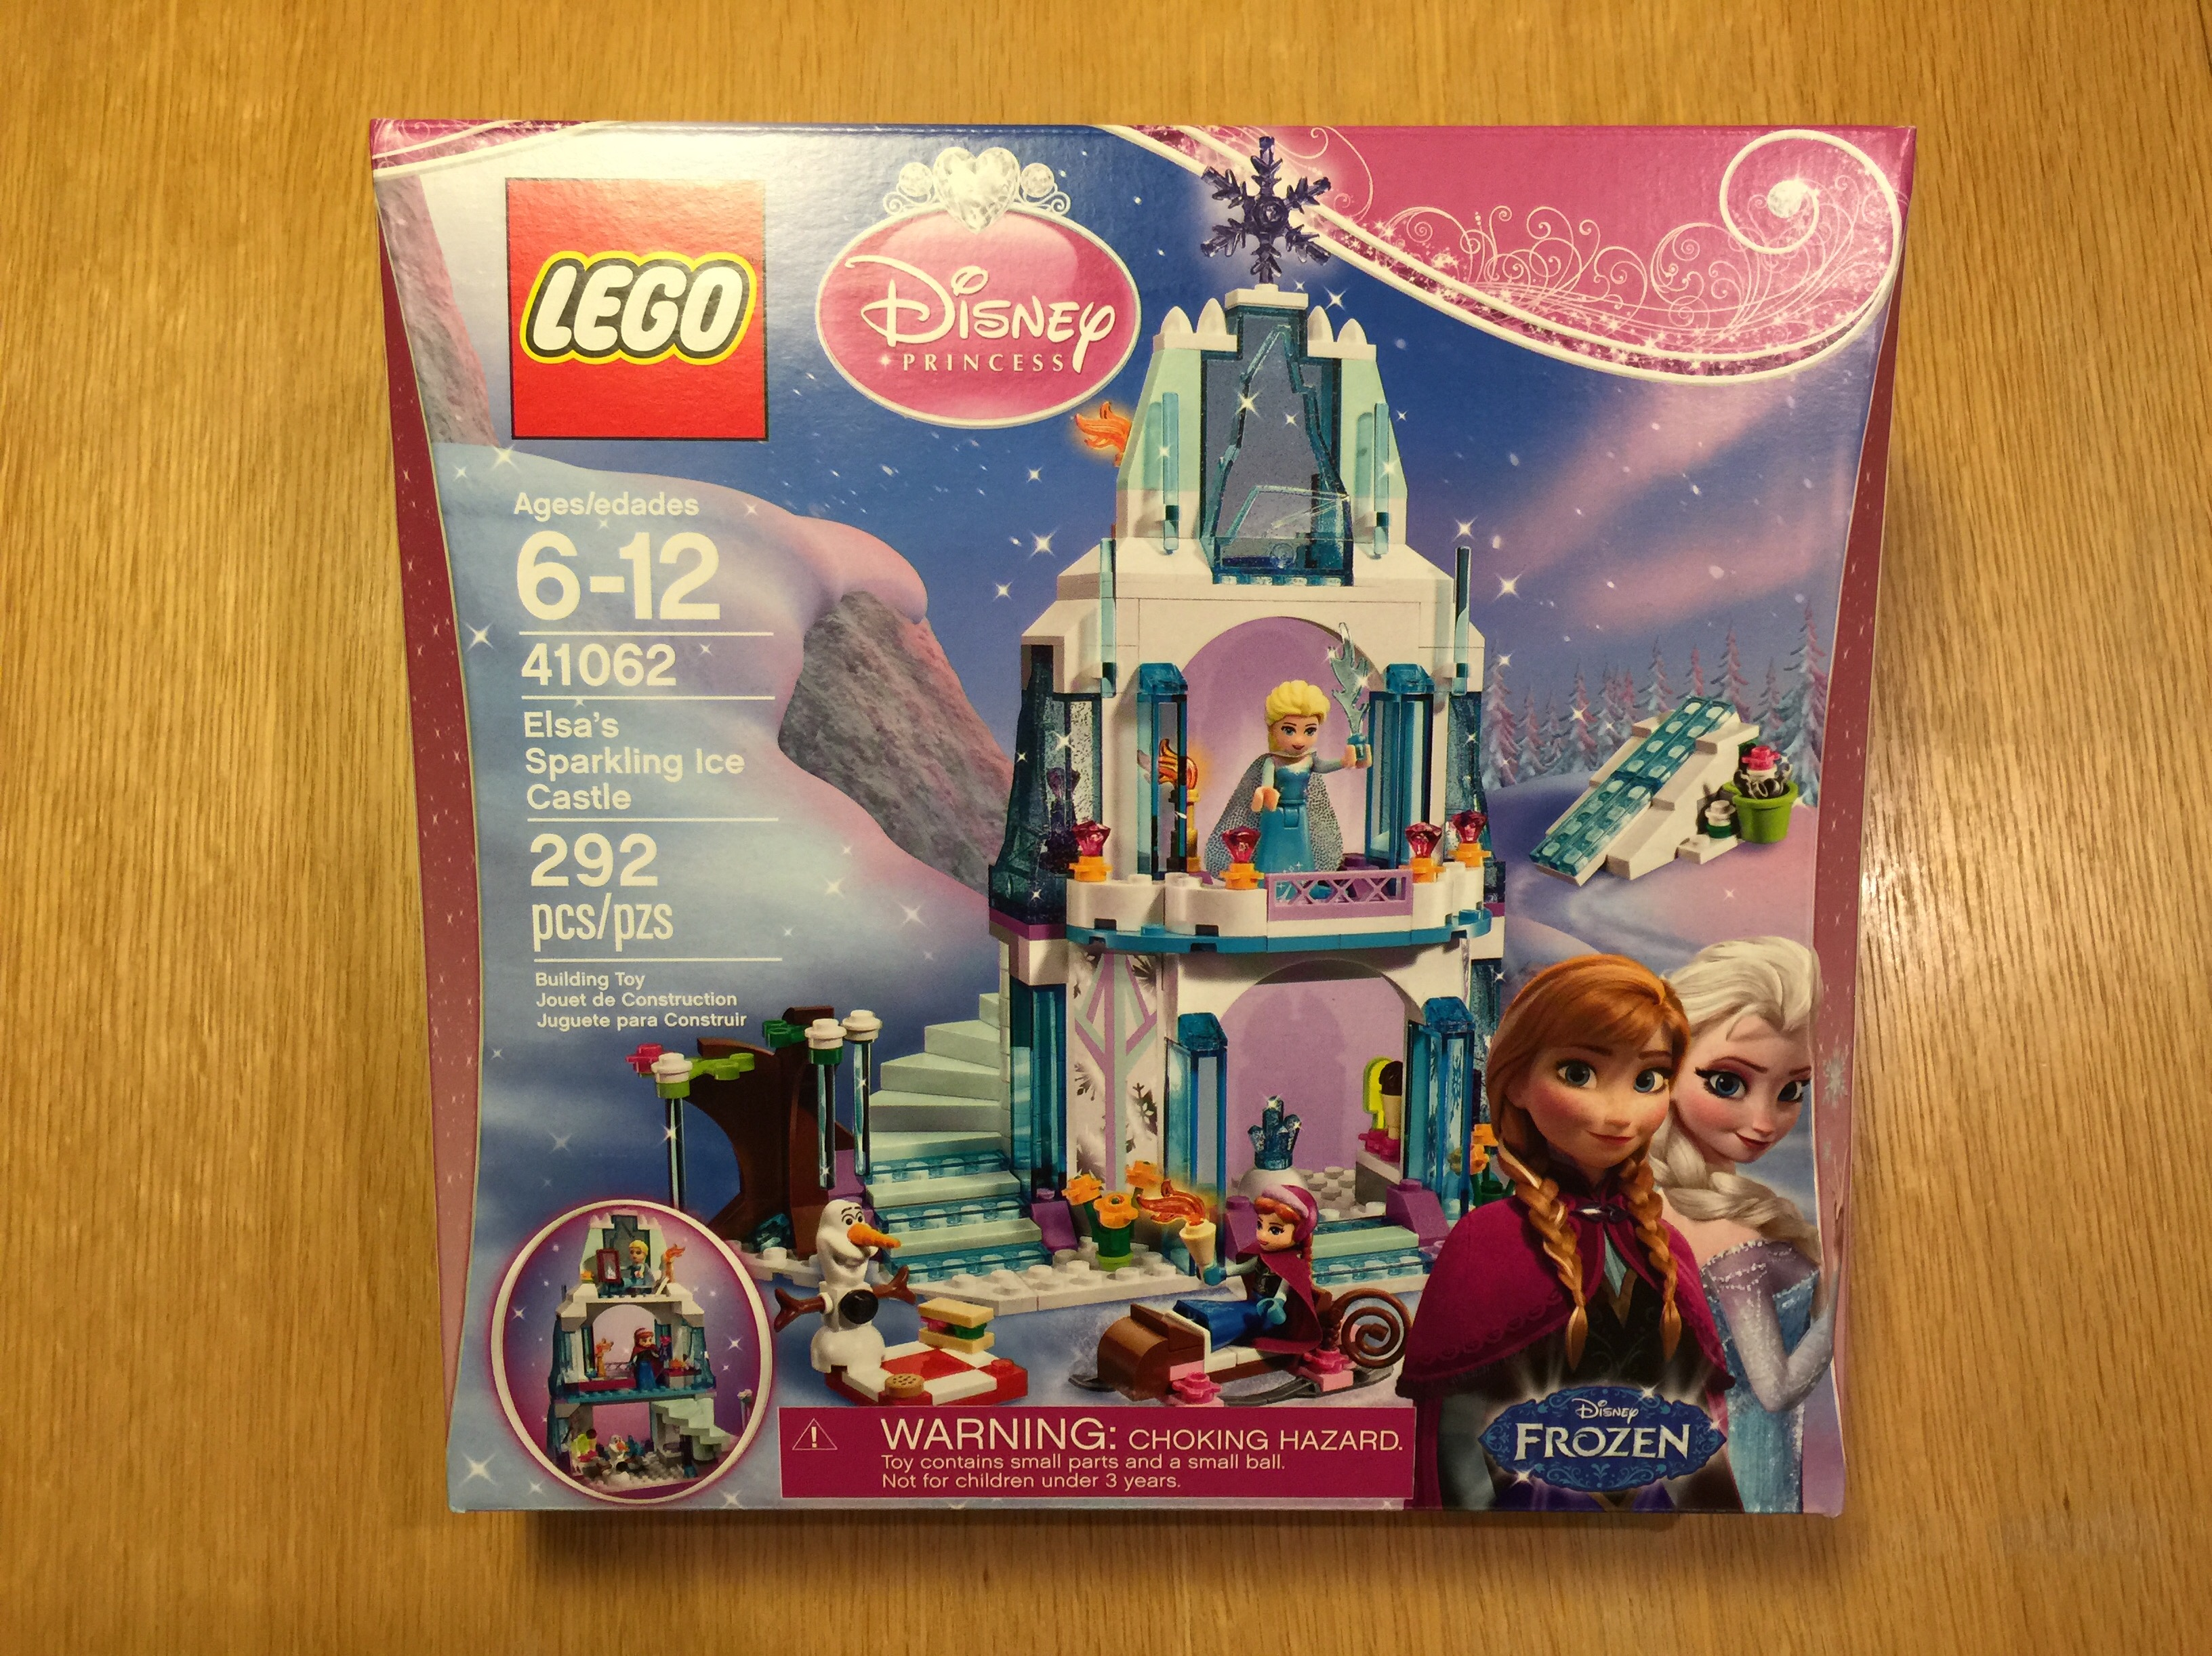 New Lego Disney Princess Sets Now Available At Target Stores